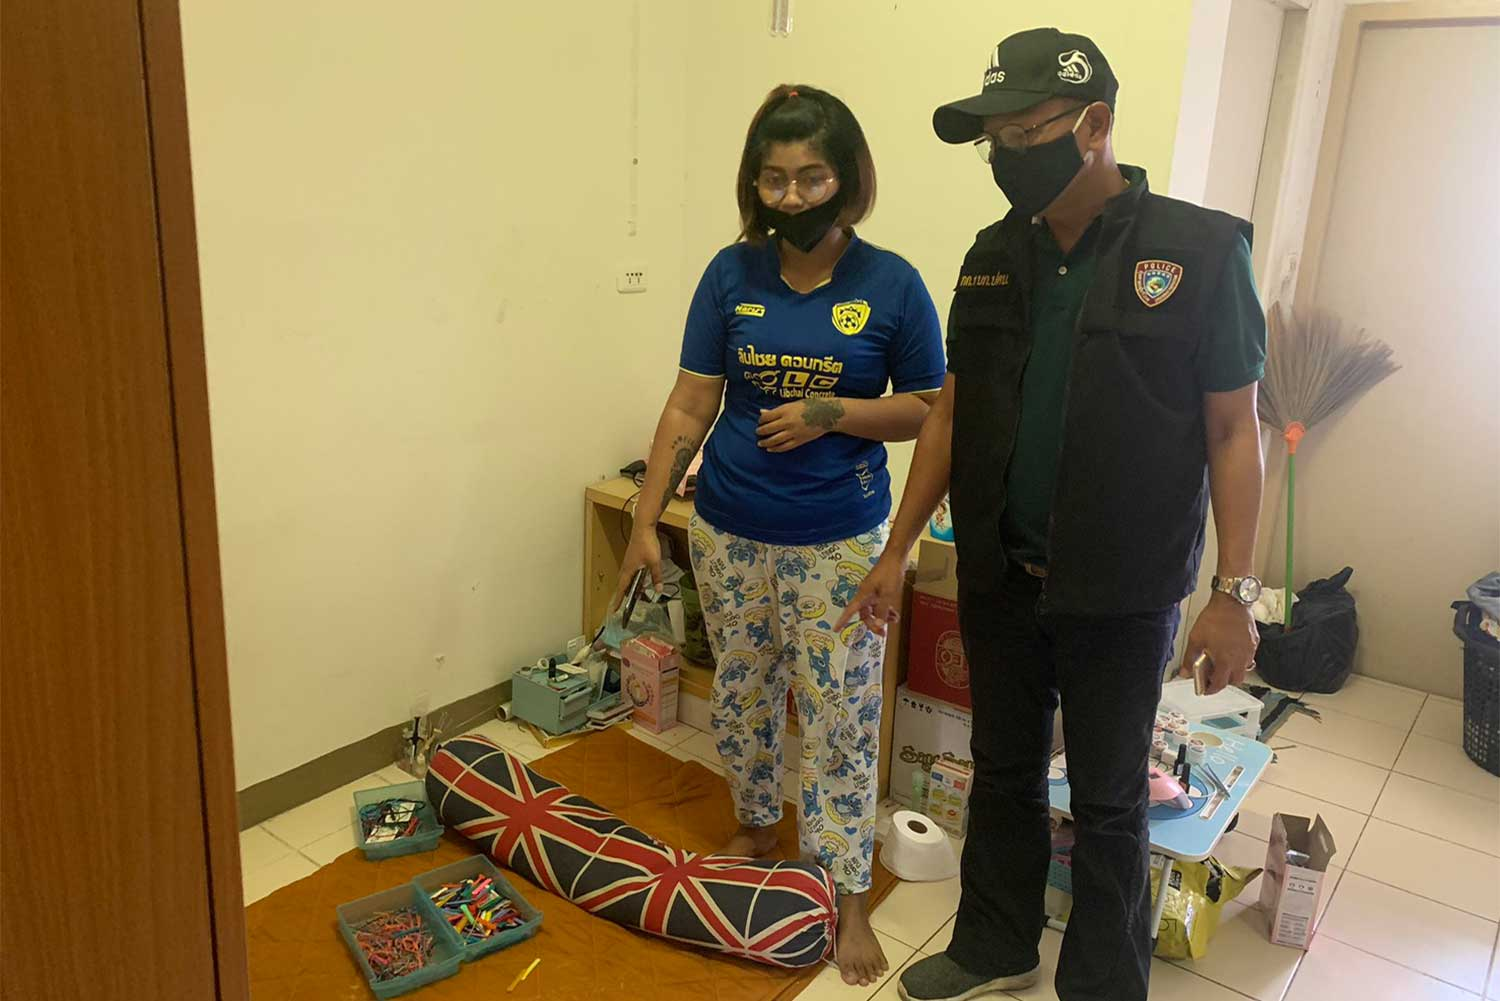 Natsuda Sriwichian, 30, of Buri Ram, pictured during her arrest in a room in Nakhon Pathom's Samphan district on Wednesday for illegaly selling and fitting fashionable teeth braces. (Photo supplied/Wassayos Ngamkham)